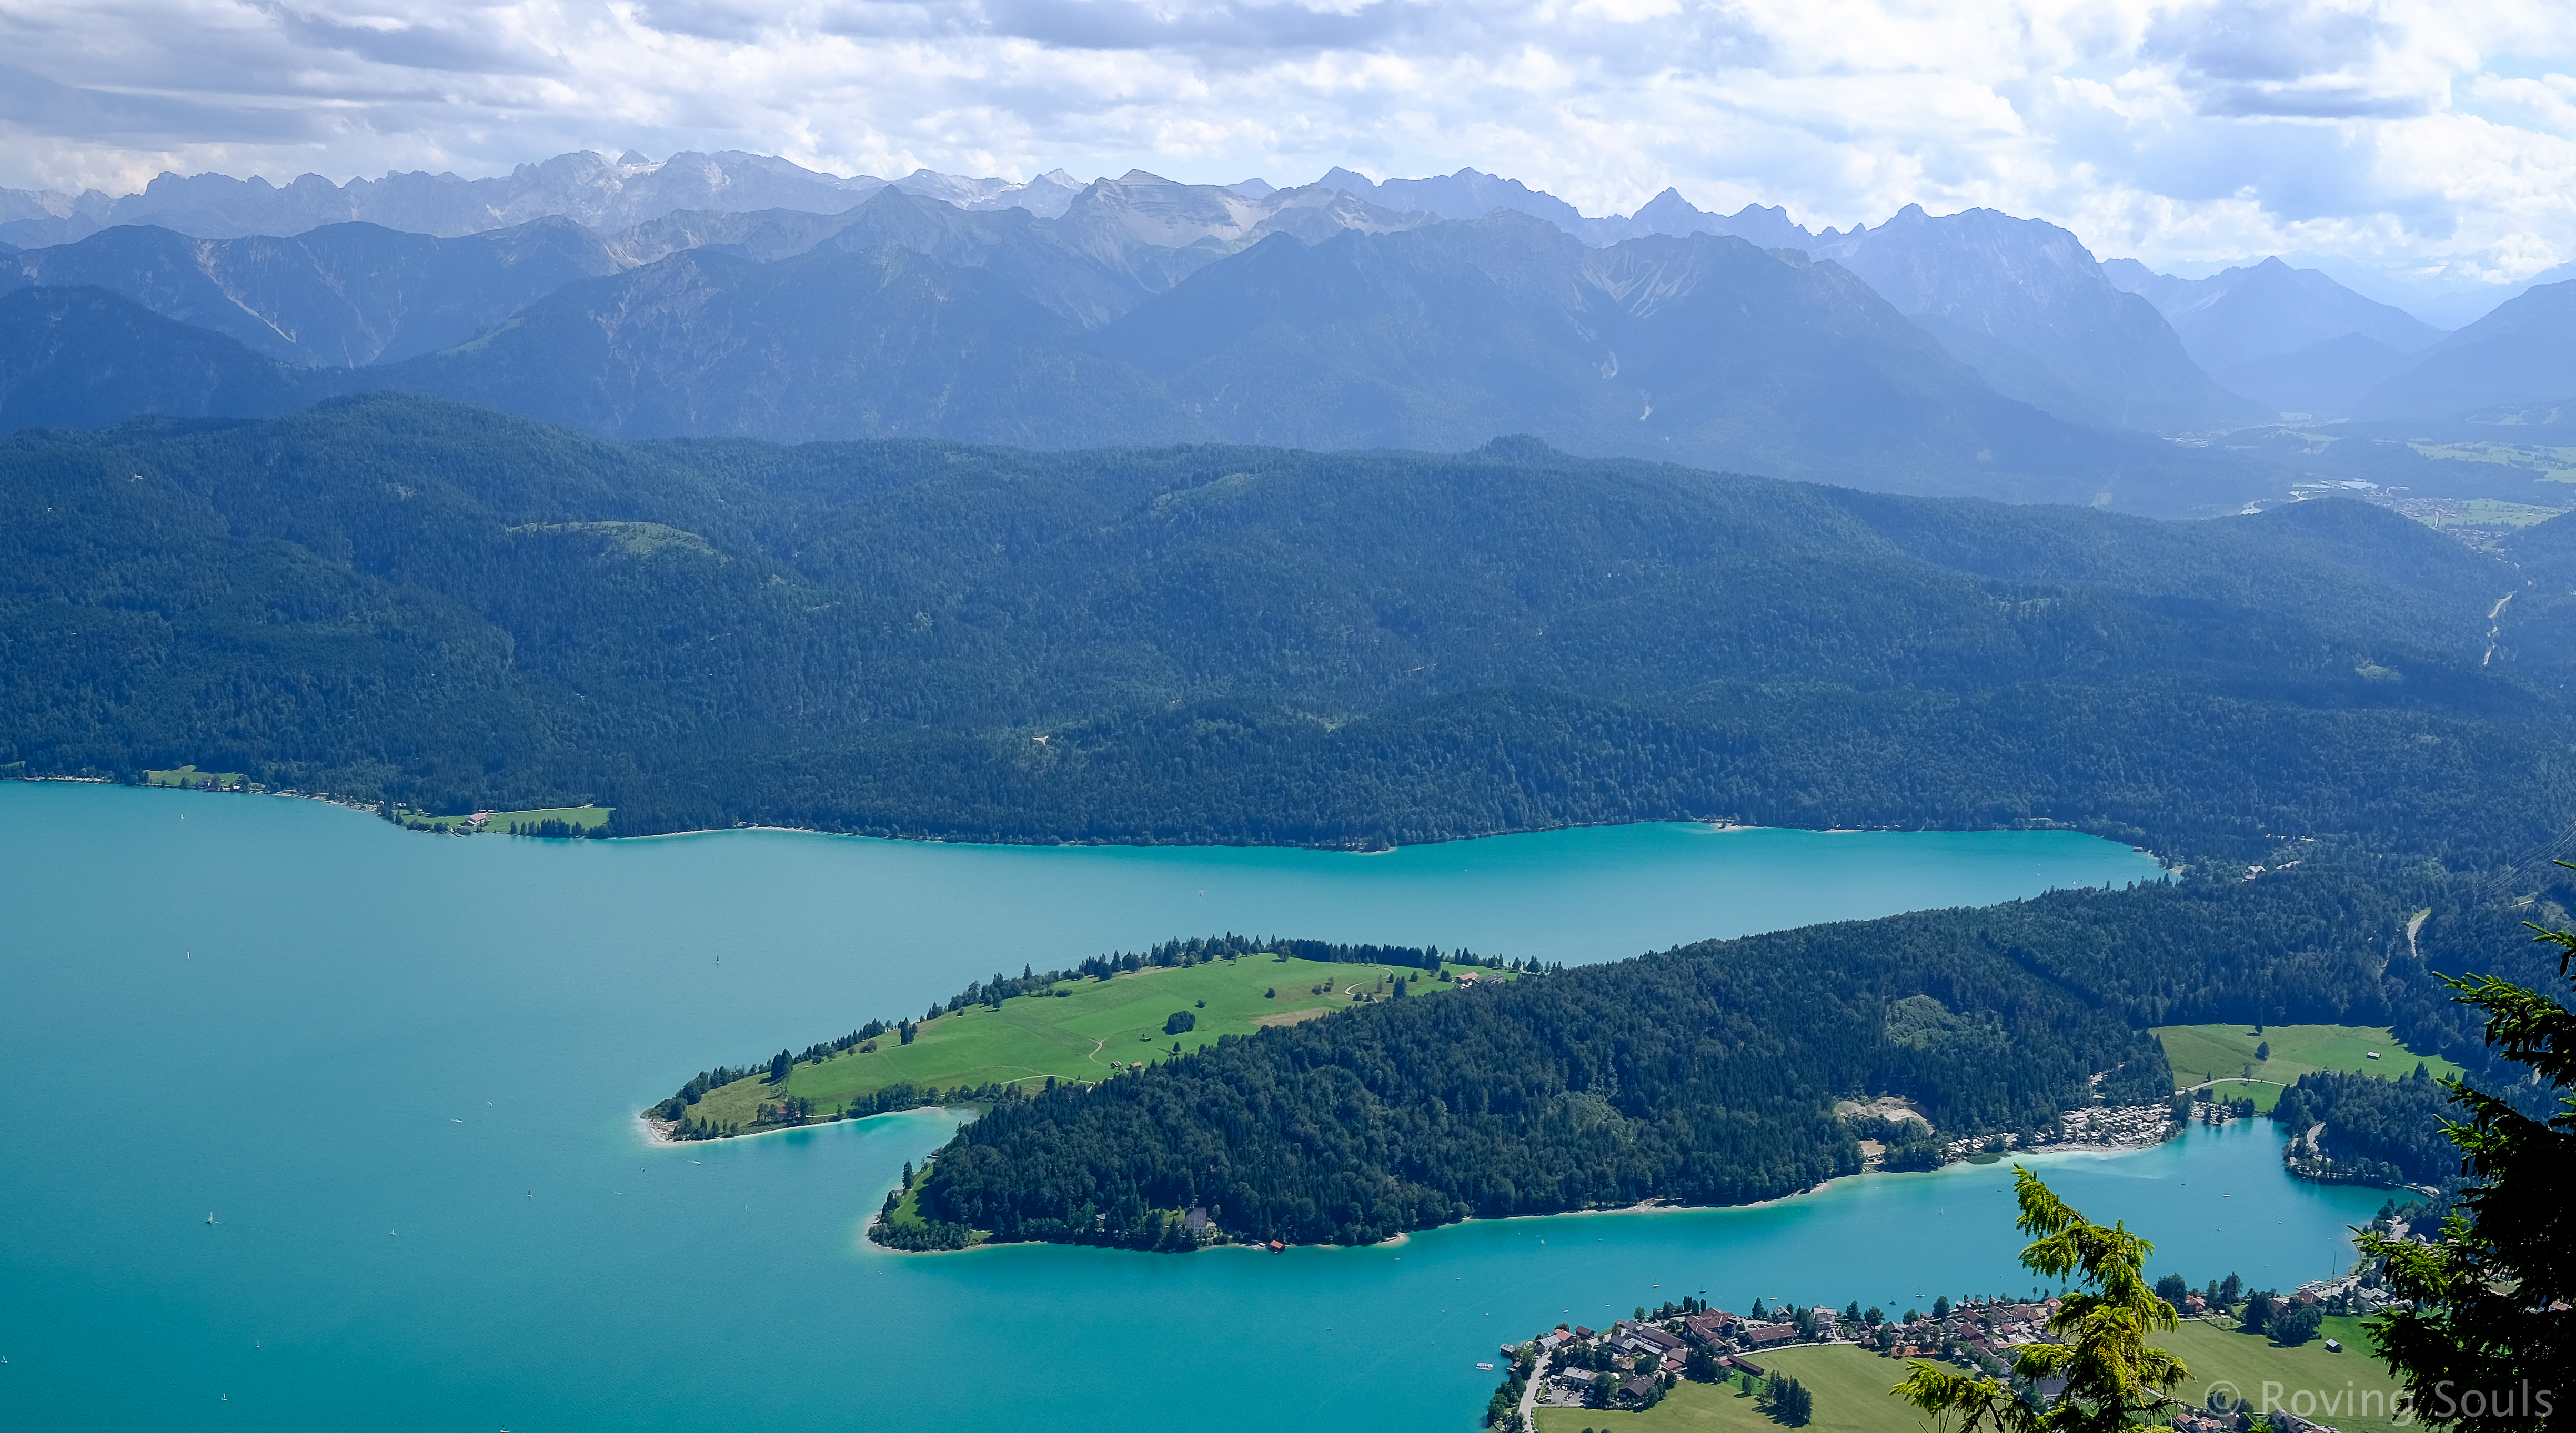 The Walchensee Bavarian Alps, Germany August 2016